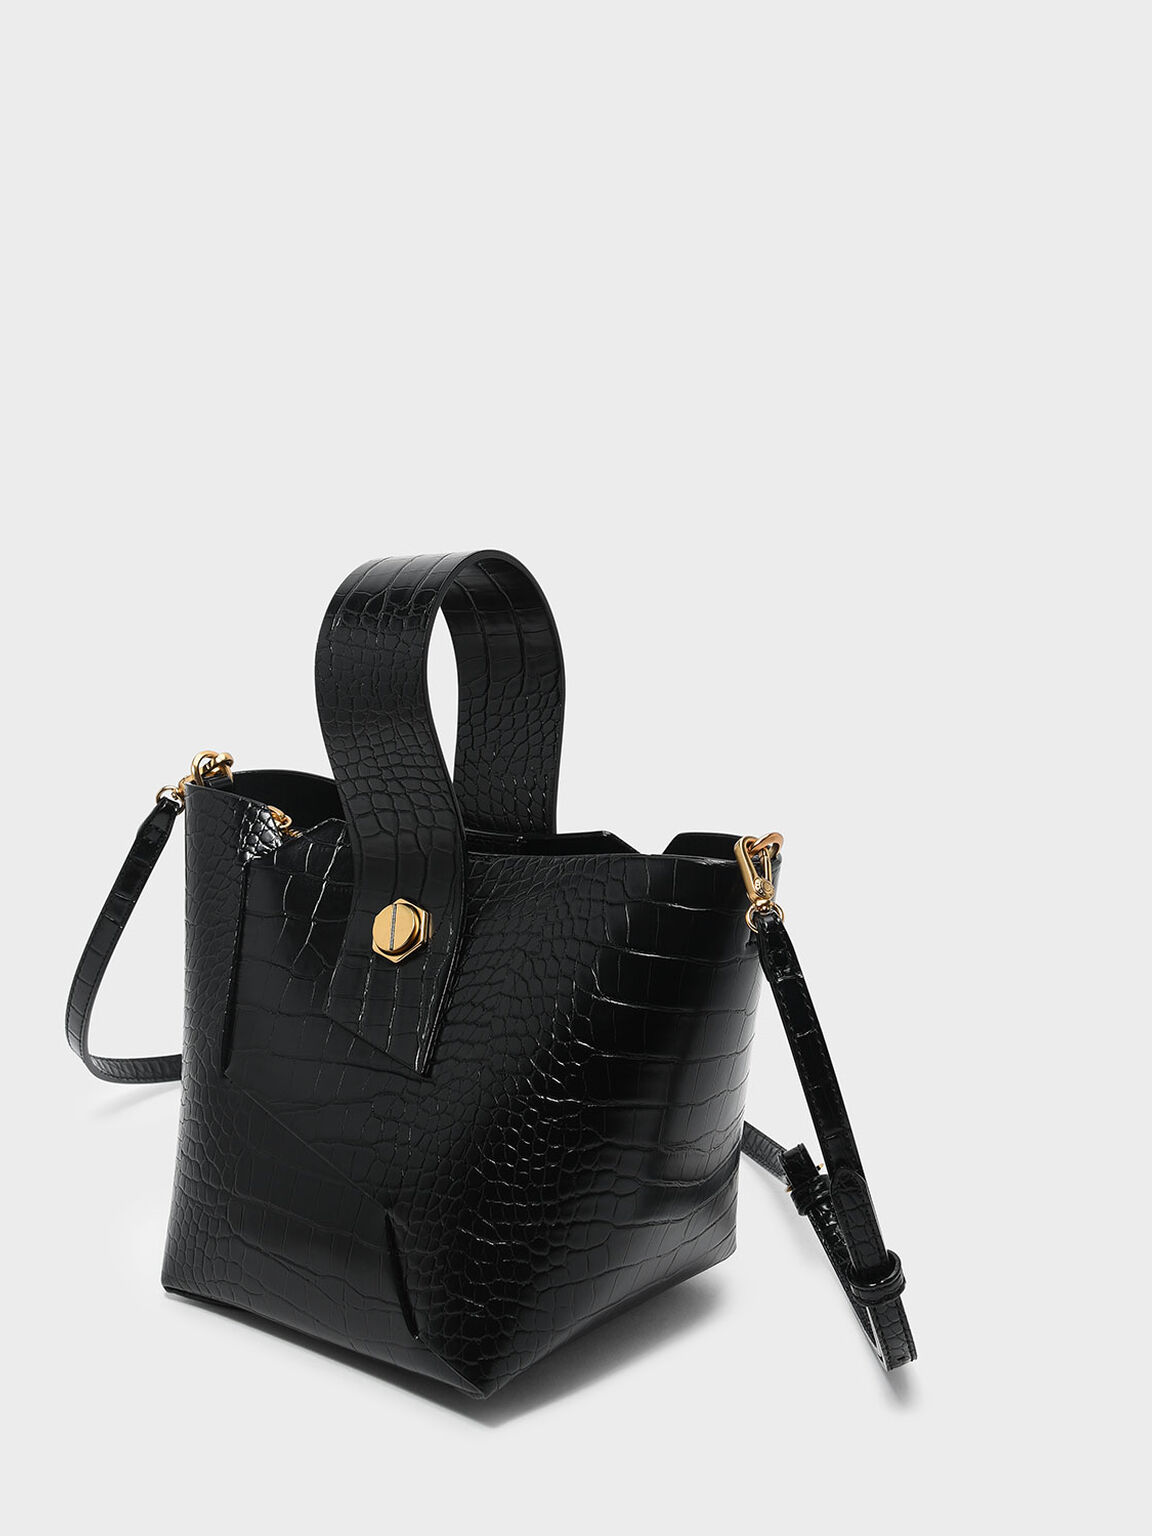 Croc-Effect Wristlet Handle Bucket Bag, Black, hi-res